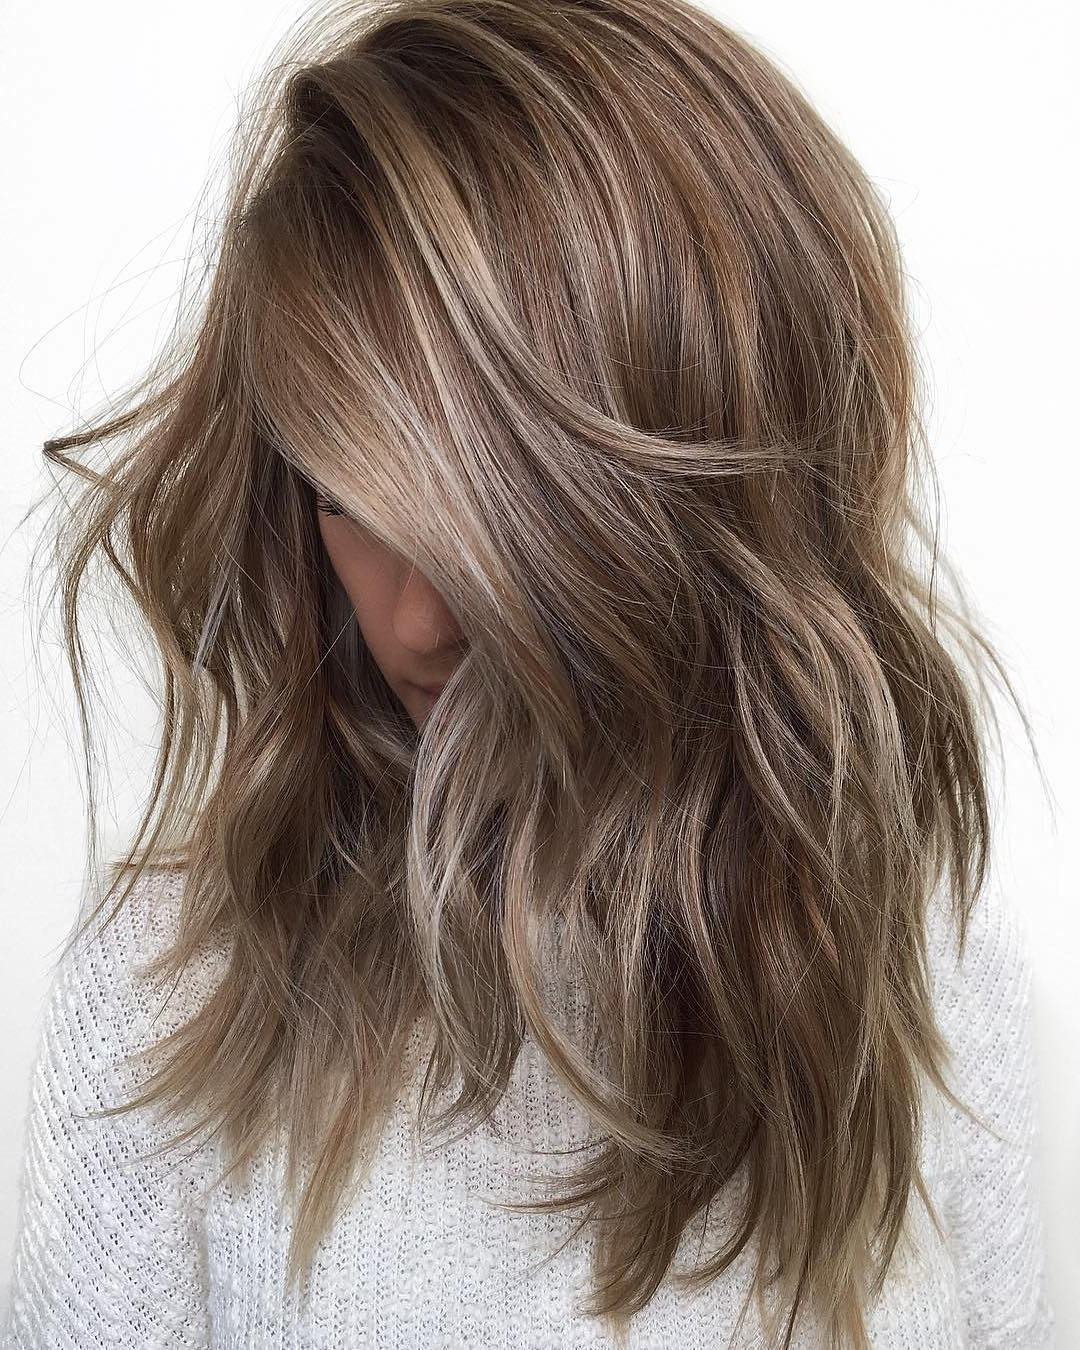 10 Balayage Ombre Hair Styles For Shoulder Length Hair Inside Most Recently Released Black To Light Brown Ombre Waves Hairstyles (View 18 of 20)